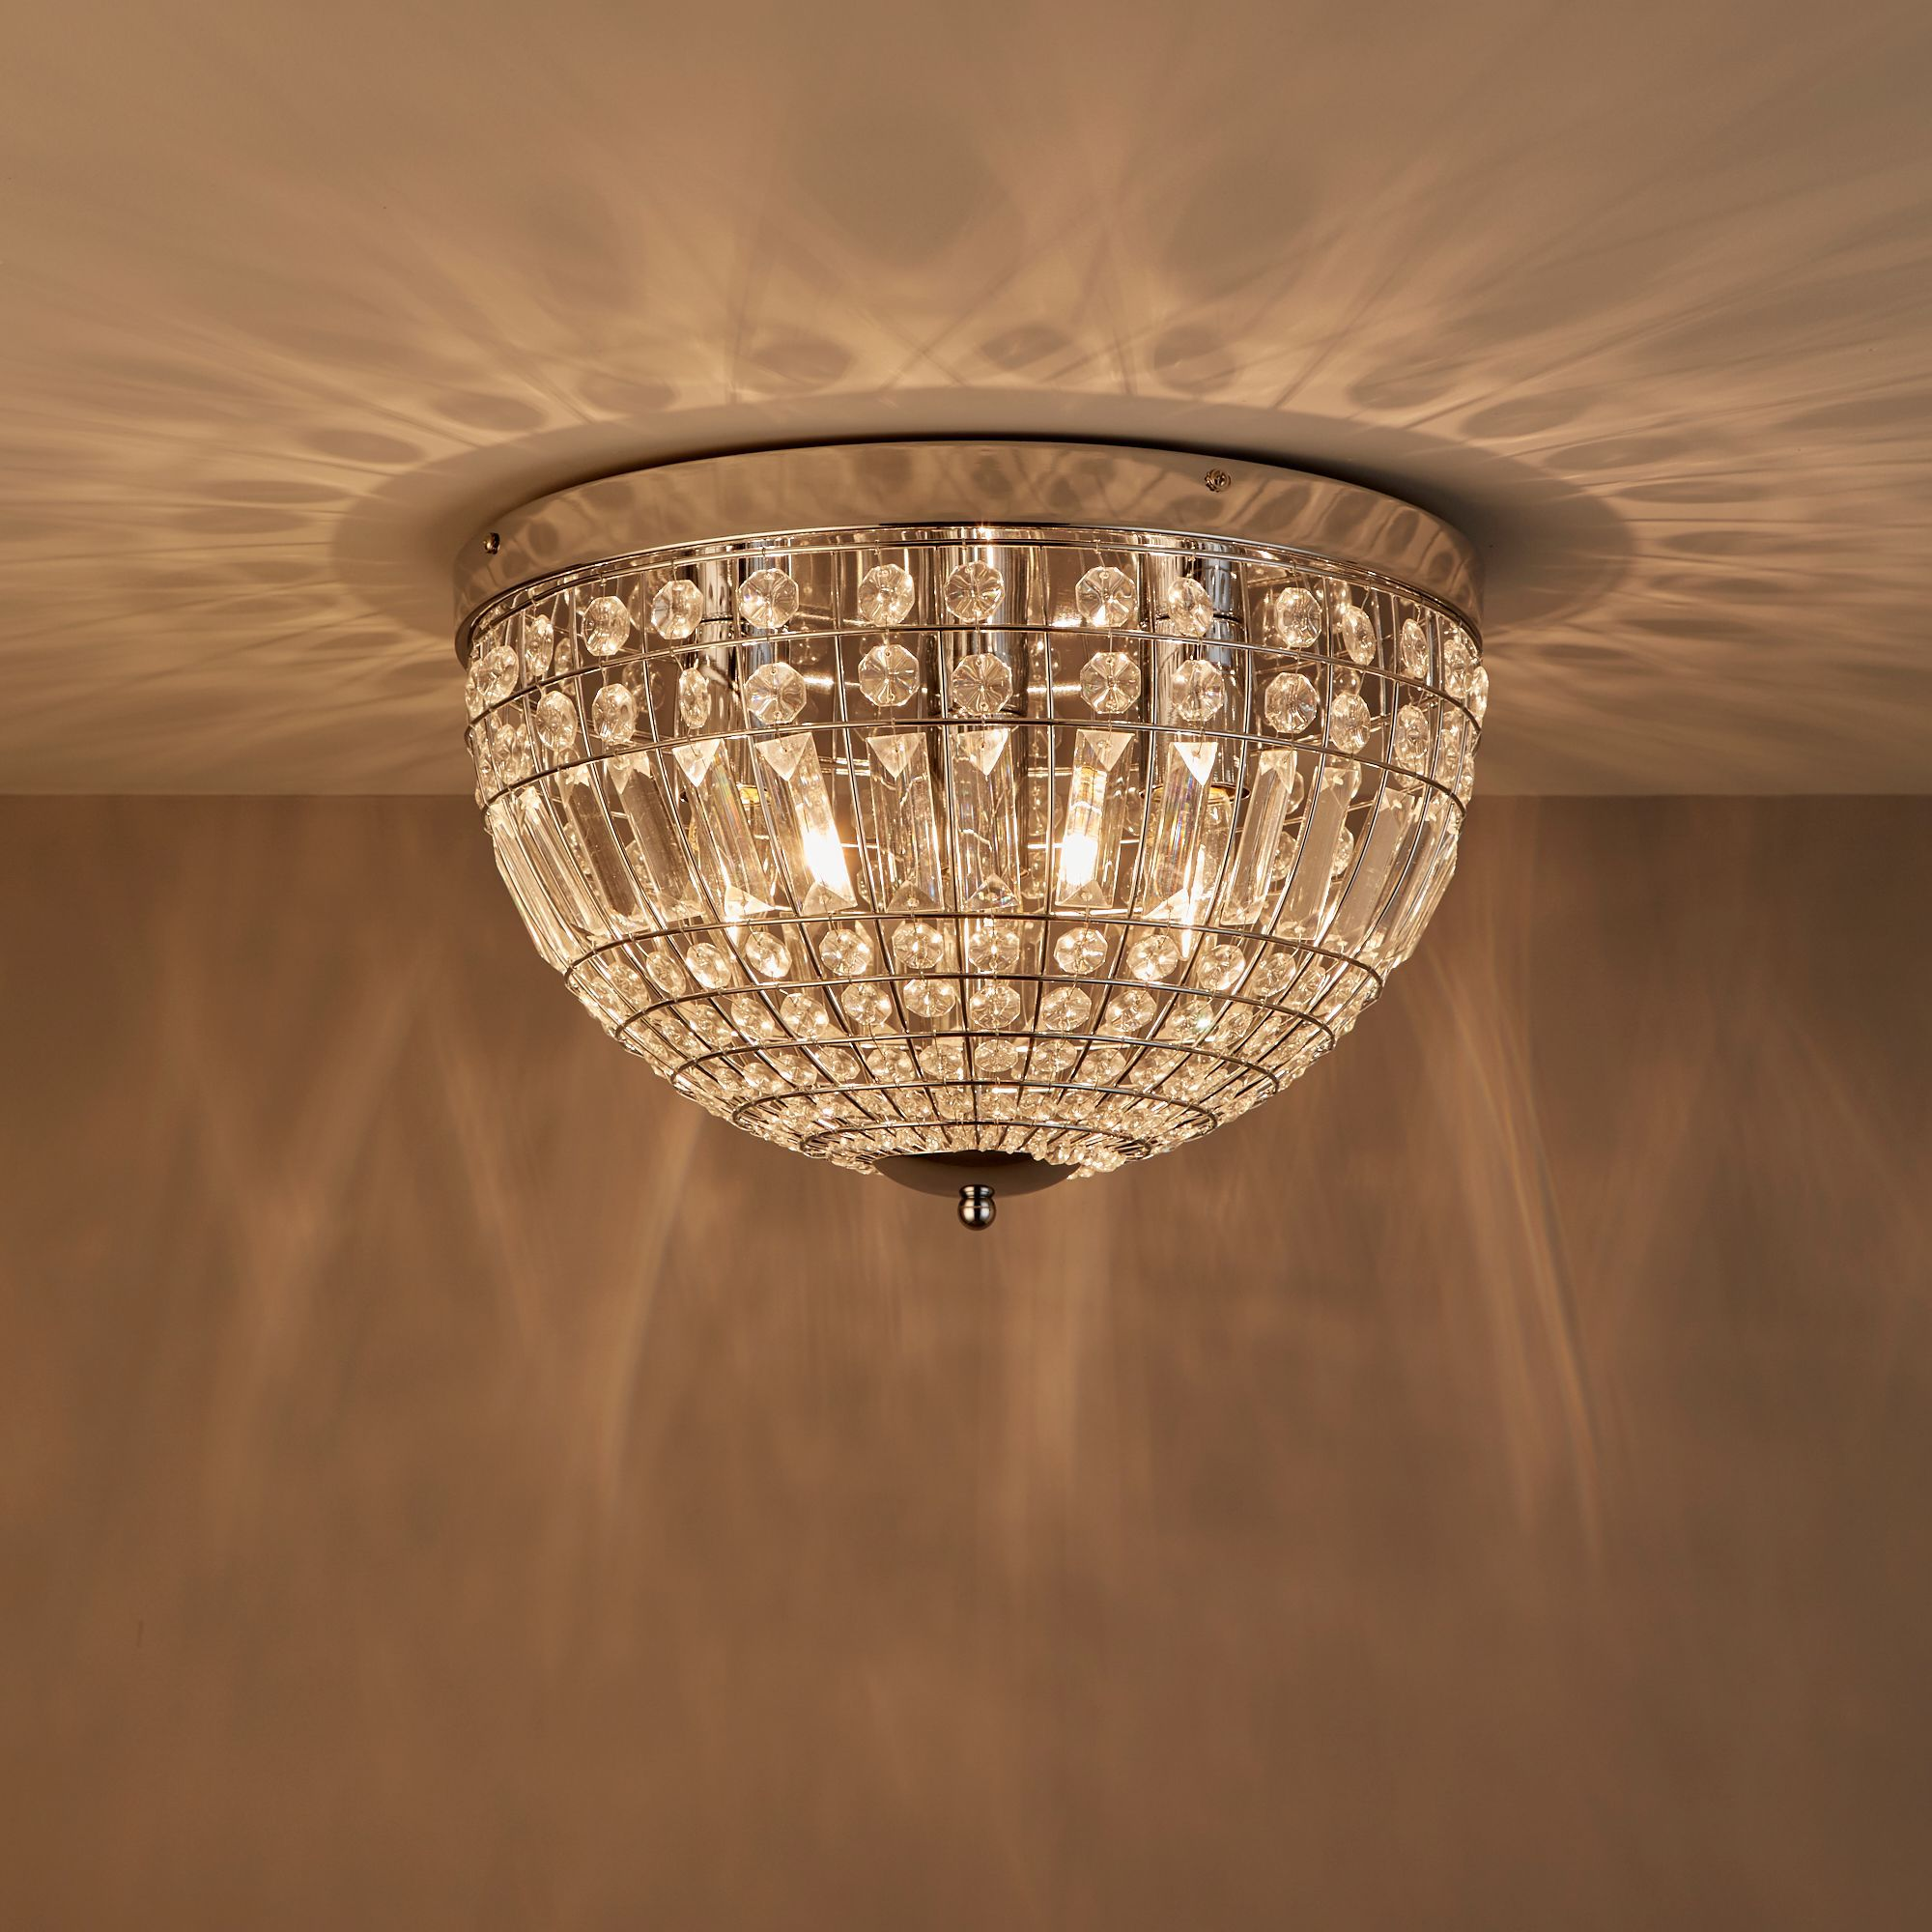 Kryos Chrome effect 3 Lamp Ceiling light